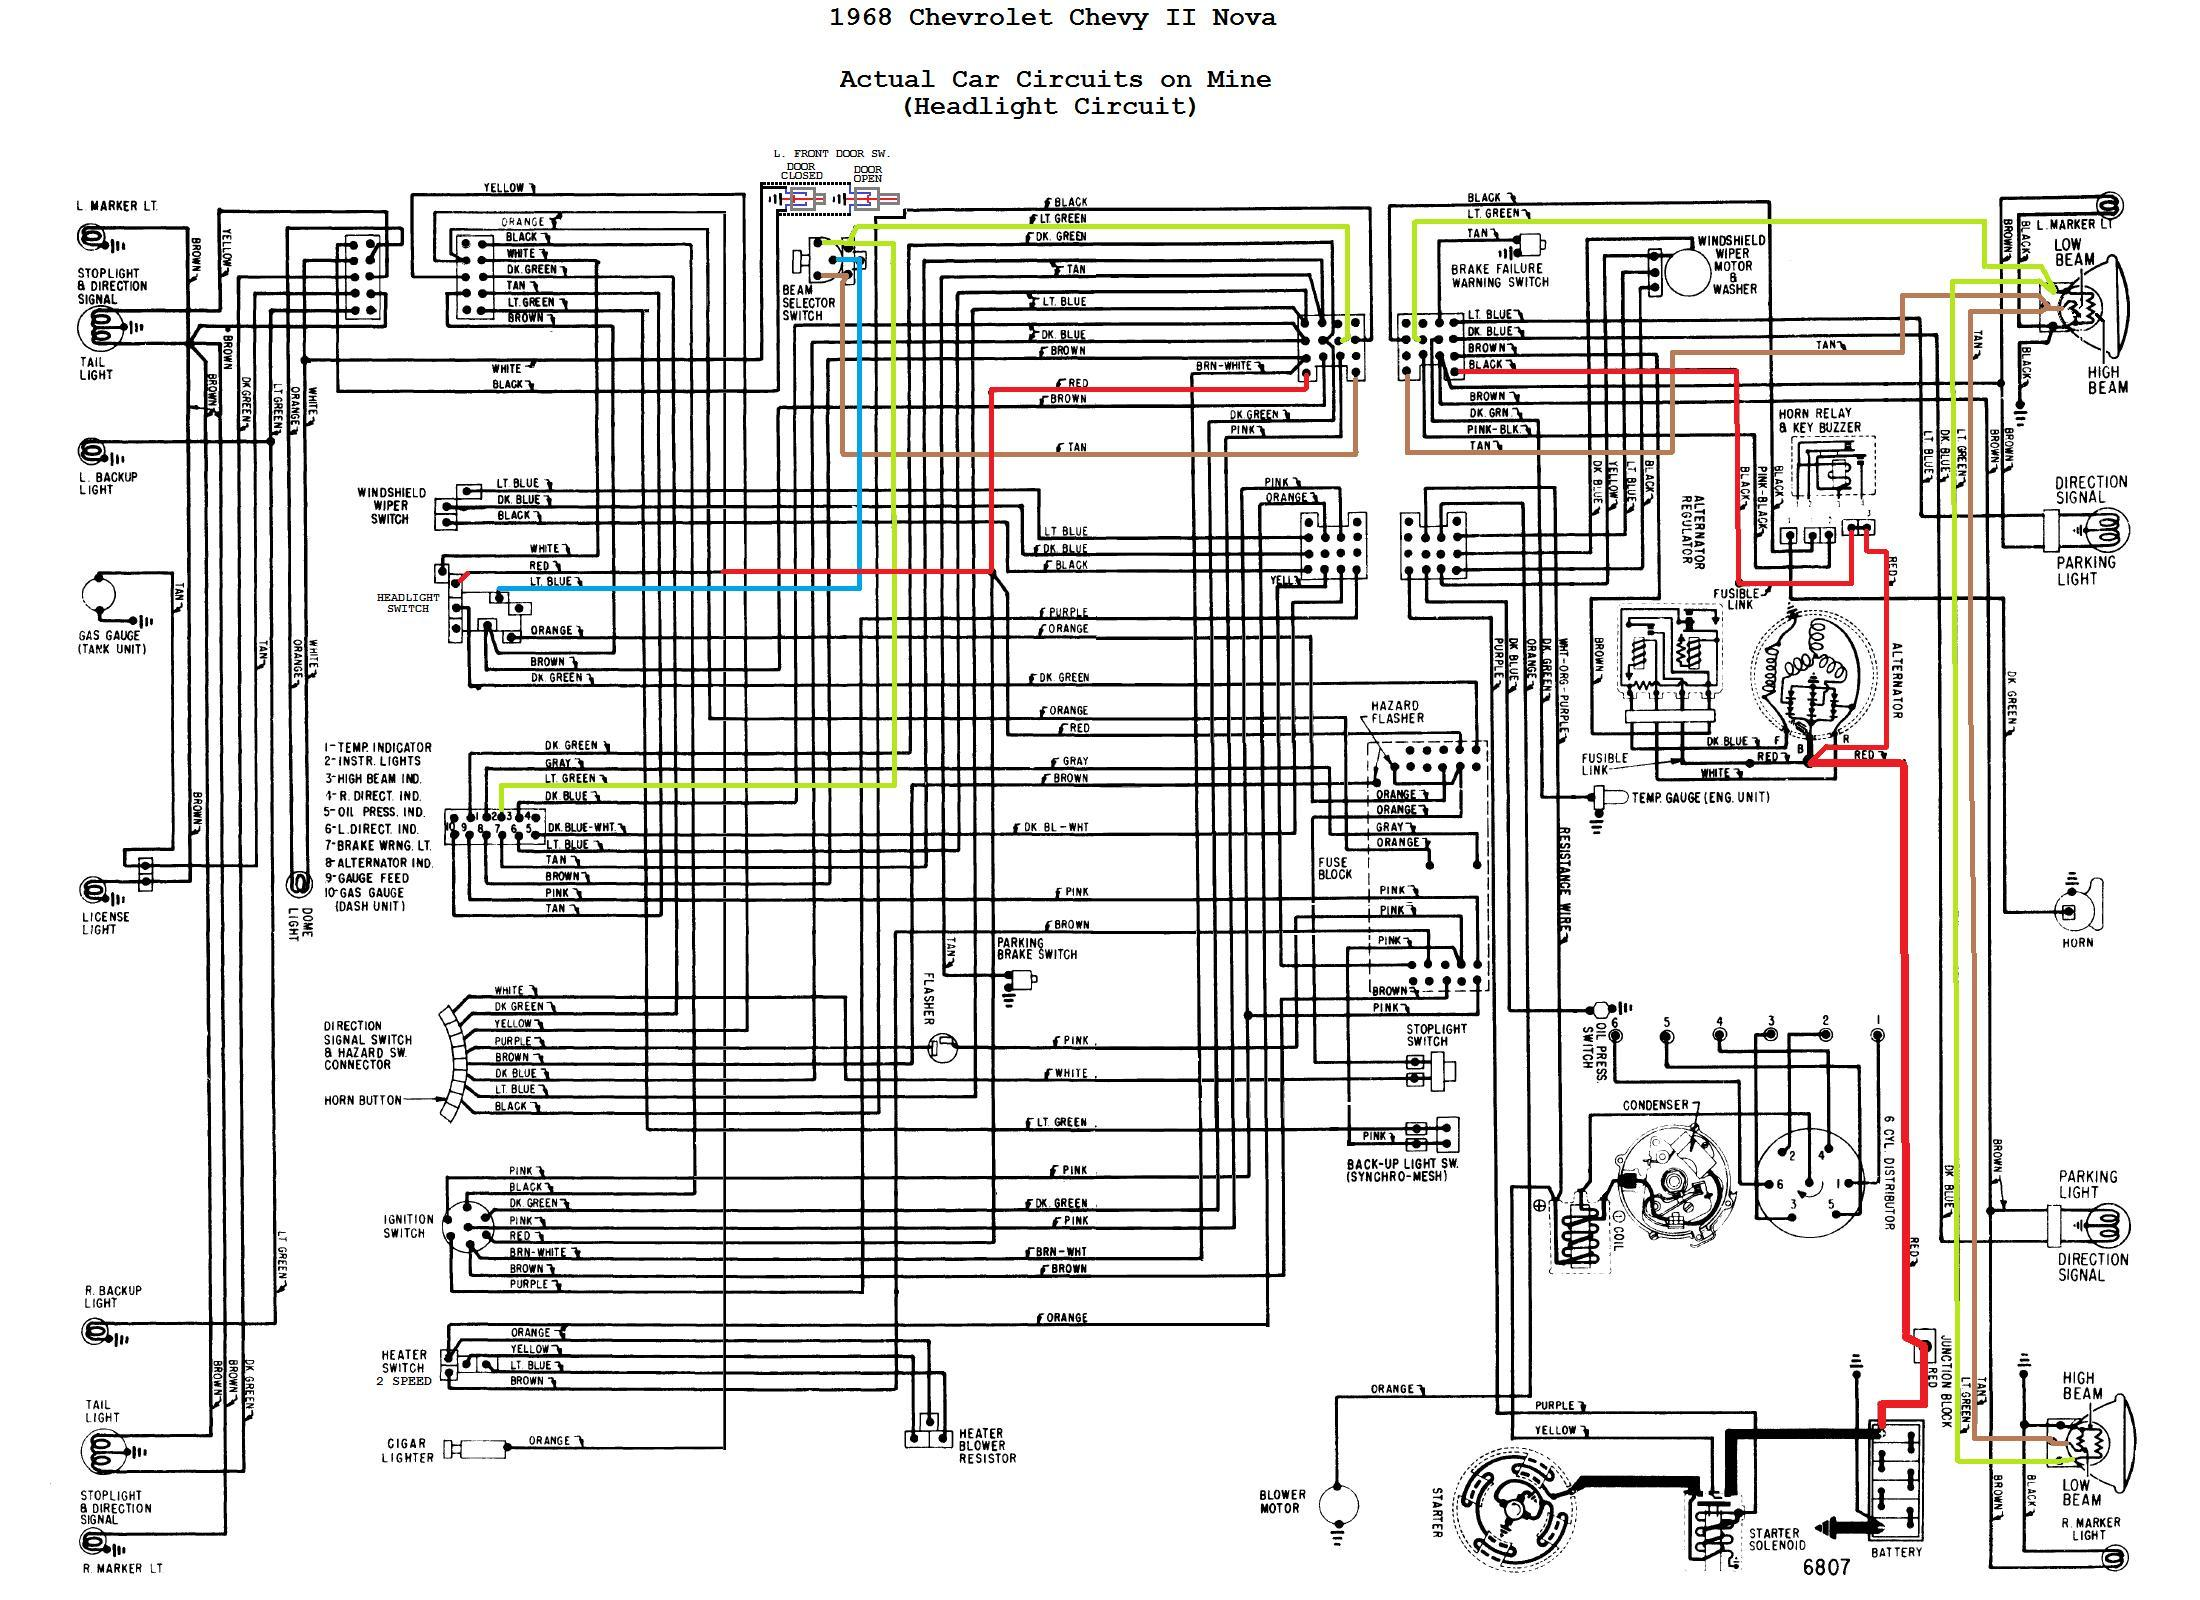 1966 dodge charger wiring harness 1968 coronet wiring diagram wiring diagram e11  1968 coronet wiring diagram wiring